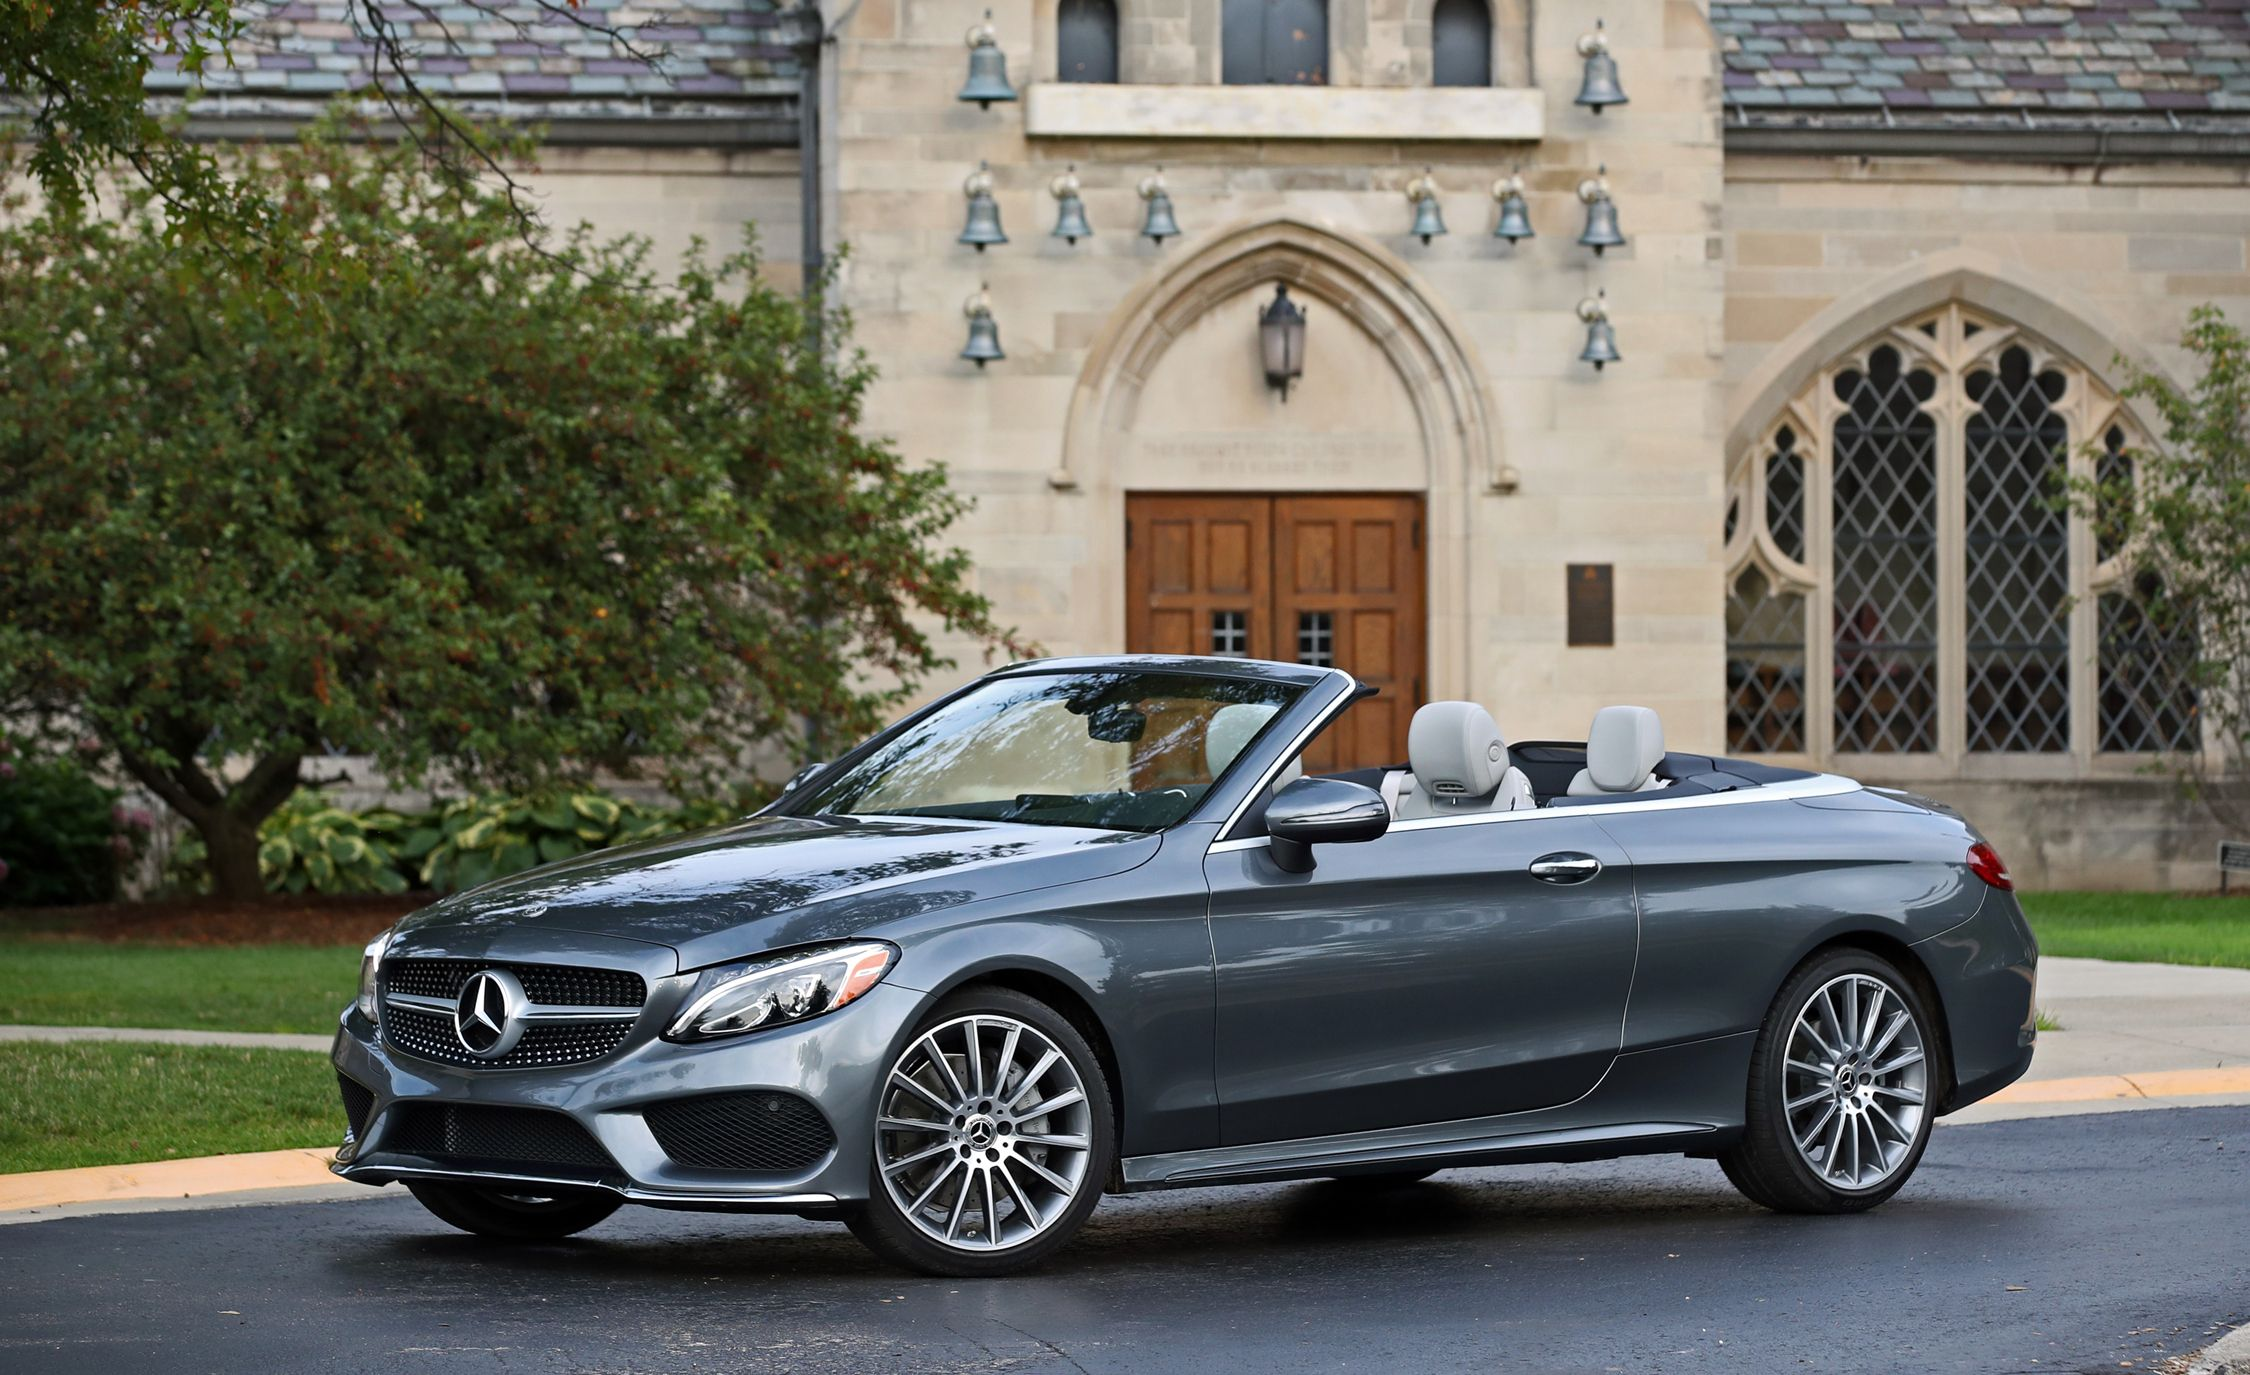 2018 Mercedes Benz C Class Coupe And Cabriolet Interior Review